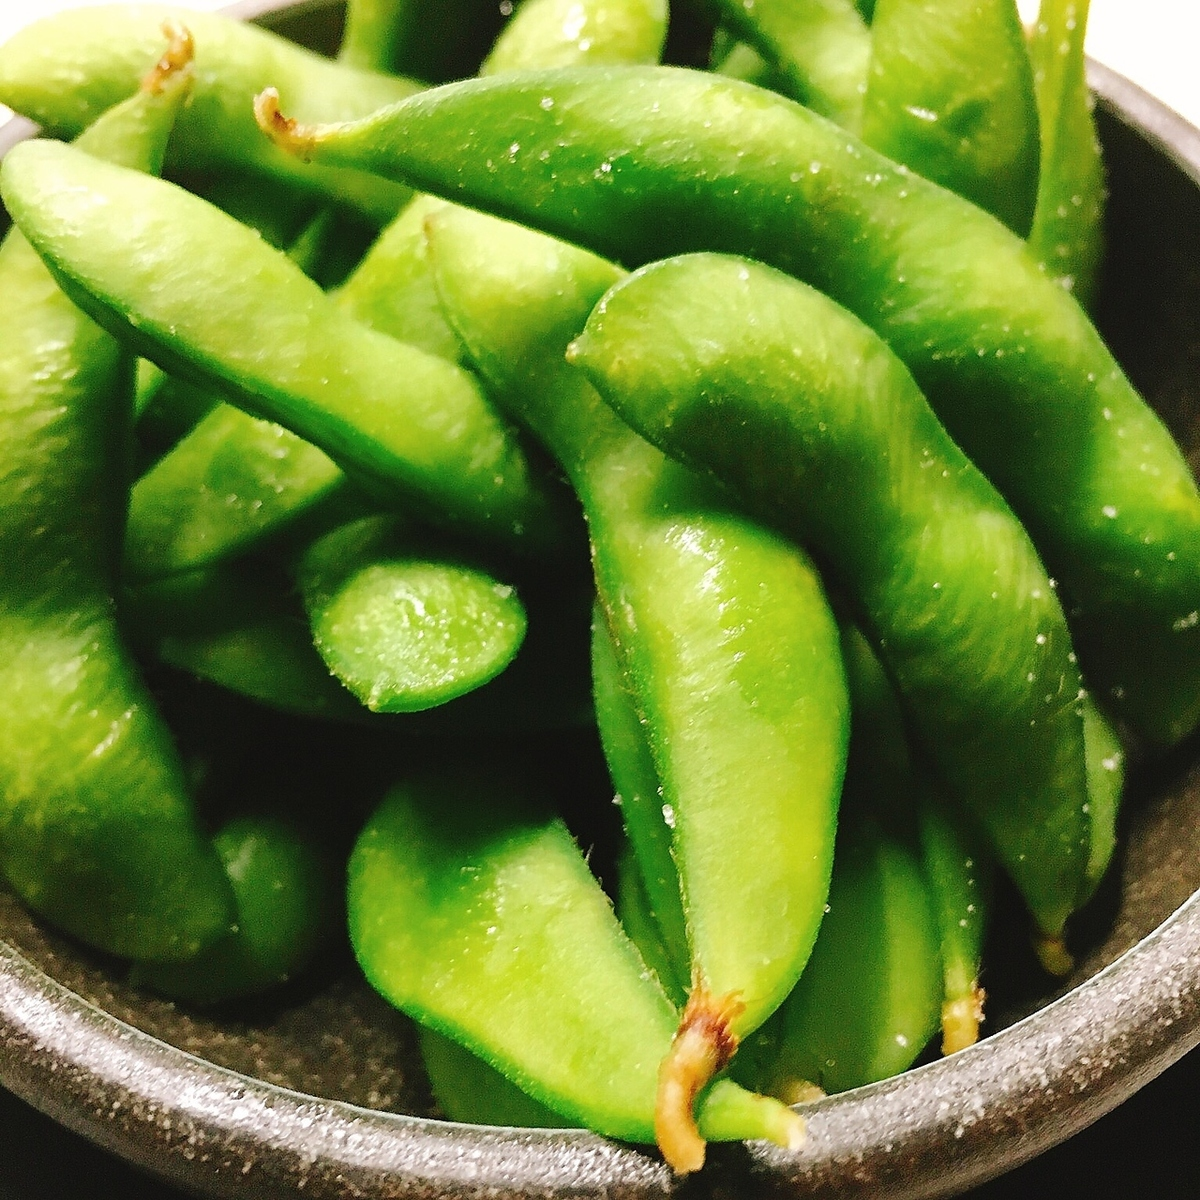 Boiled and edamame